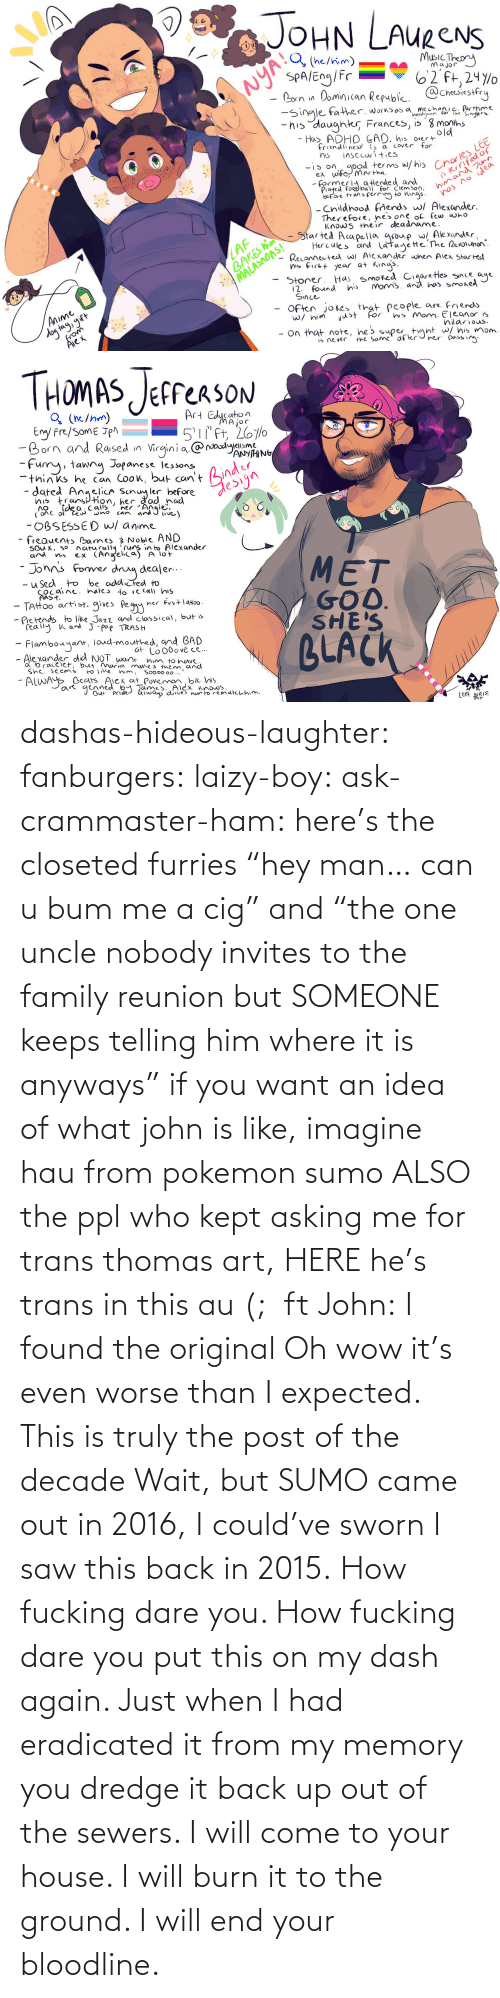 "you: dashas-hideous-laughter:  fanburgers:   laizy-boy:   ask-crammaster-ham:   here's the closeted furries ""hey man… can u bum me a cig"" and ""the one uncle nobody invites to the family reunion but SOMEONE keeps telling him where it is anyways""   if you want an idea of what john is like, imagine hau from pokemon sumo ALSO the ppl who kept asking me for trans thomas art, HERE he's trans in this au (;  ft John:    I found the original     Oh wow it's even worse than I expected. This is truly the post of the decade    Wait, but SUMO came out in 2016, I could've sworn I saw this back in 2015.    How fucking dare you. How fucking dare you put this on my dash again. Just when I had eradicated it from my memory you dredge it back up out of the sewers. I will come to your house. I will burn it to the ground. I will end your bloodline."